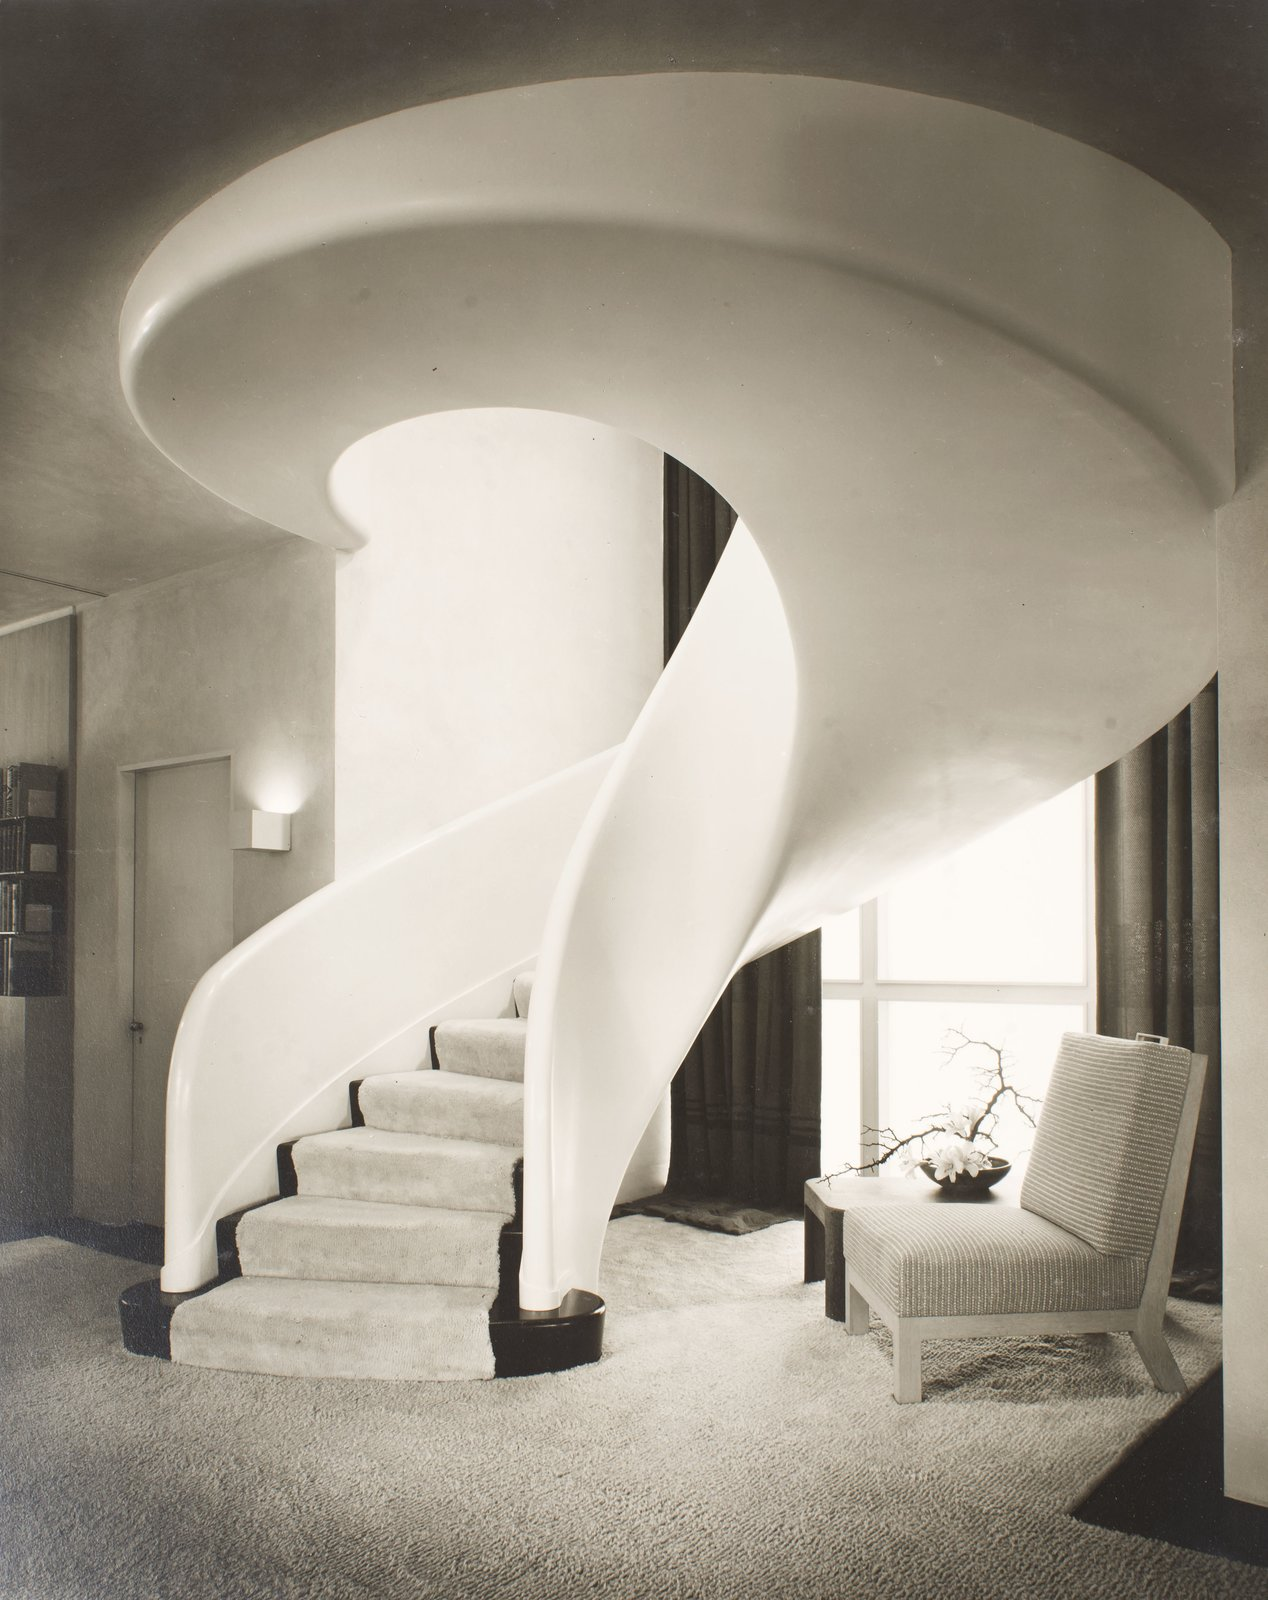 A swirling, sculptural staircase serves as the centerpiece in this 1940 residence designed by Samuel A. Marx for Morton D. May in Ladue, Missouri.   Credit: © Chicago History Museum, Hedrich-Blessing, photographer  Timeless Iconic Design from St. Louis Celebrates 50 Years of the Gateway Arch by Eero Saarinen